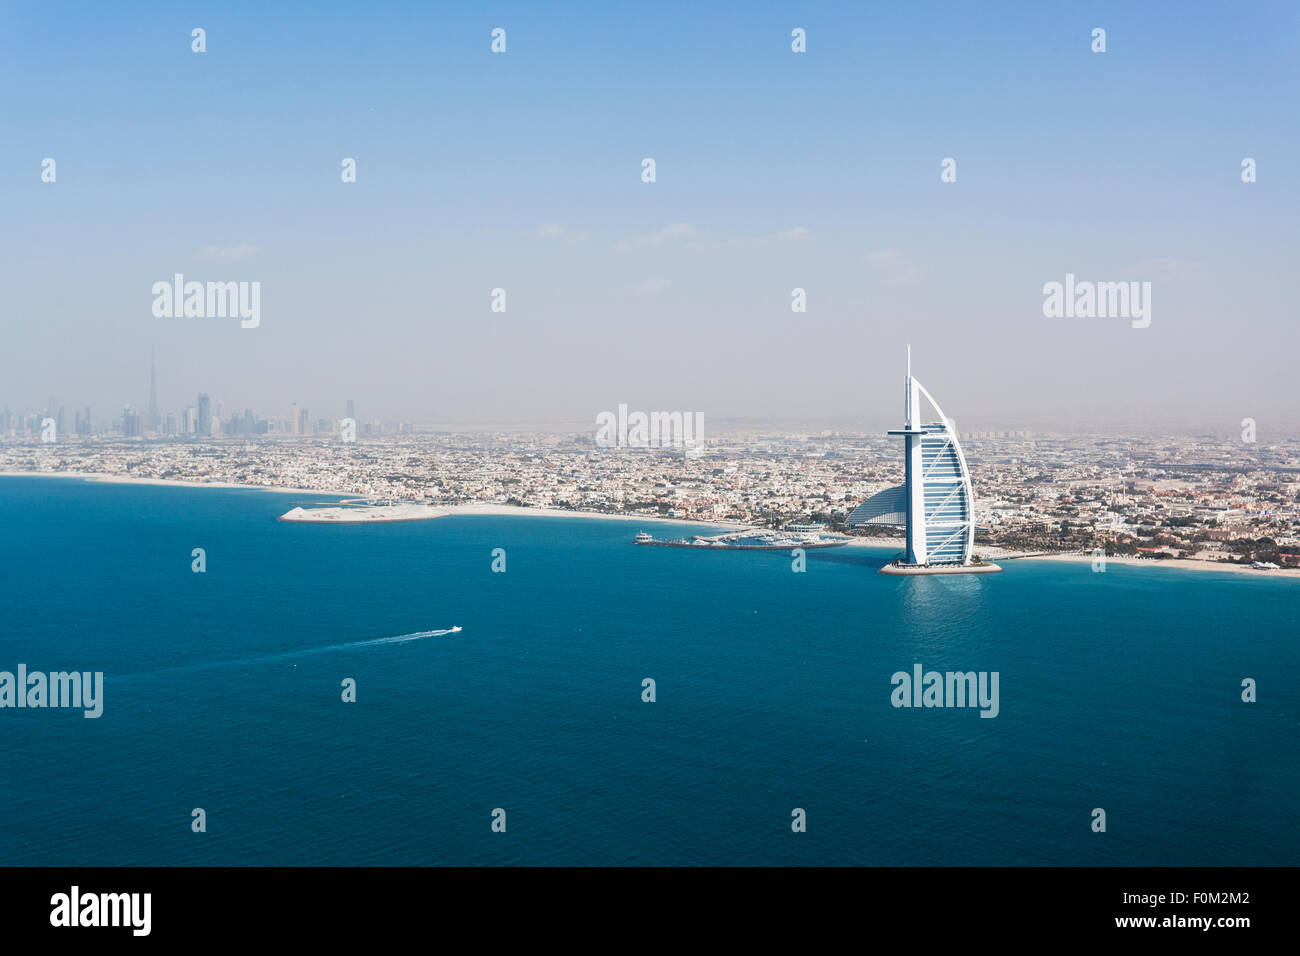 Coast with Burj Al Arab, Dubai, UAE - Stock Image